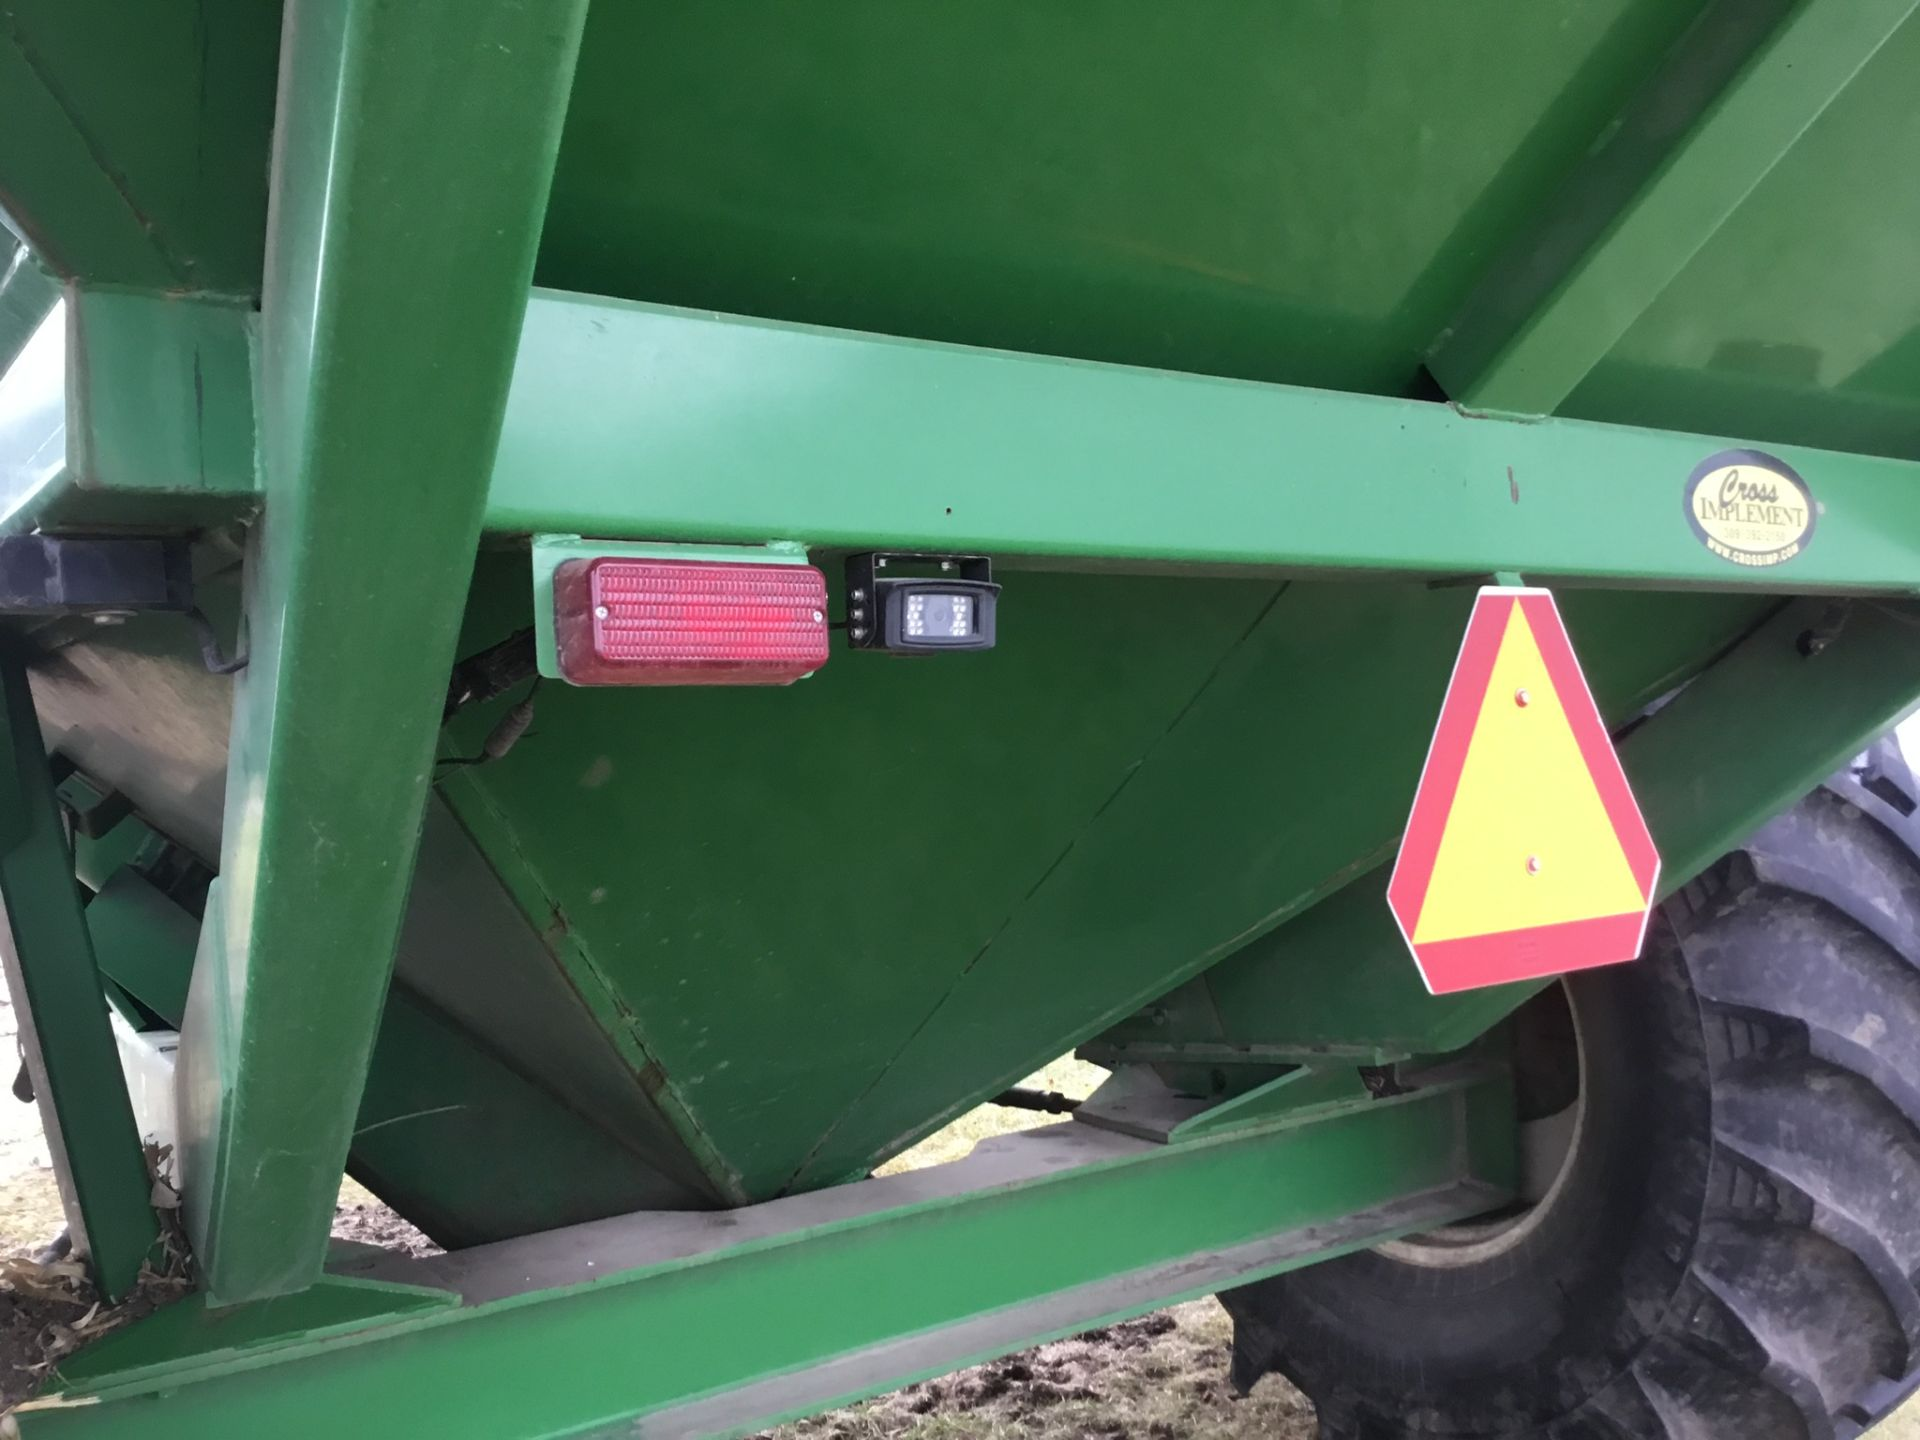 2009 Unverferth 9250 1,000 Bu. Auger Cart, Hydraulic Spout, 3 Cameras, Roll Tarp, New Augers, 900- - Image 13 of 15